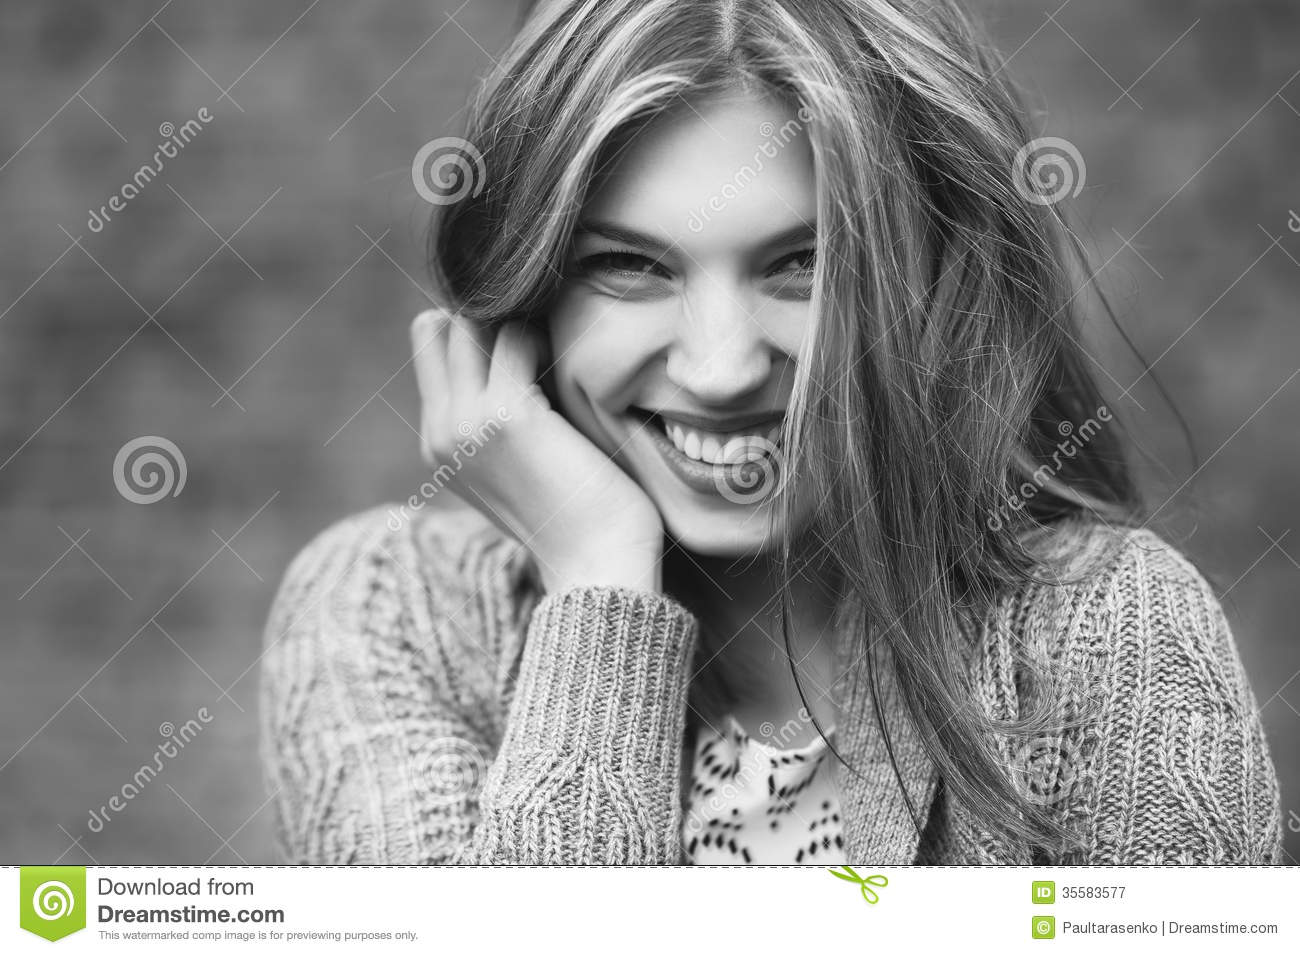 Young smiling girl close up black white photo